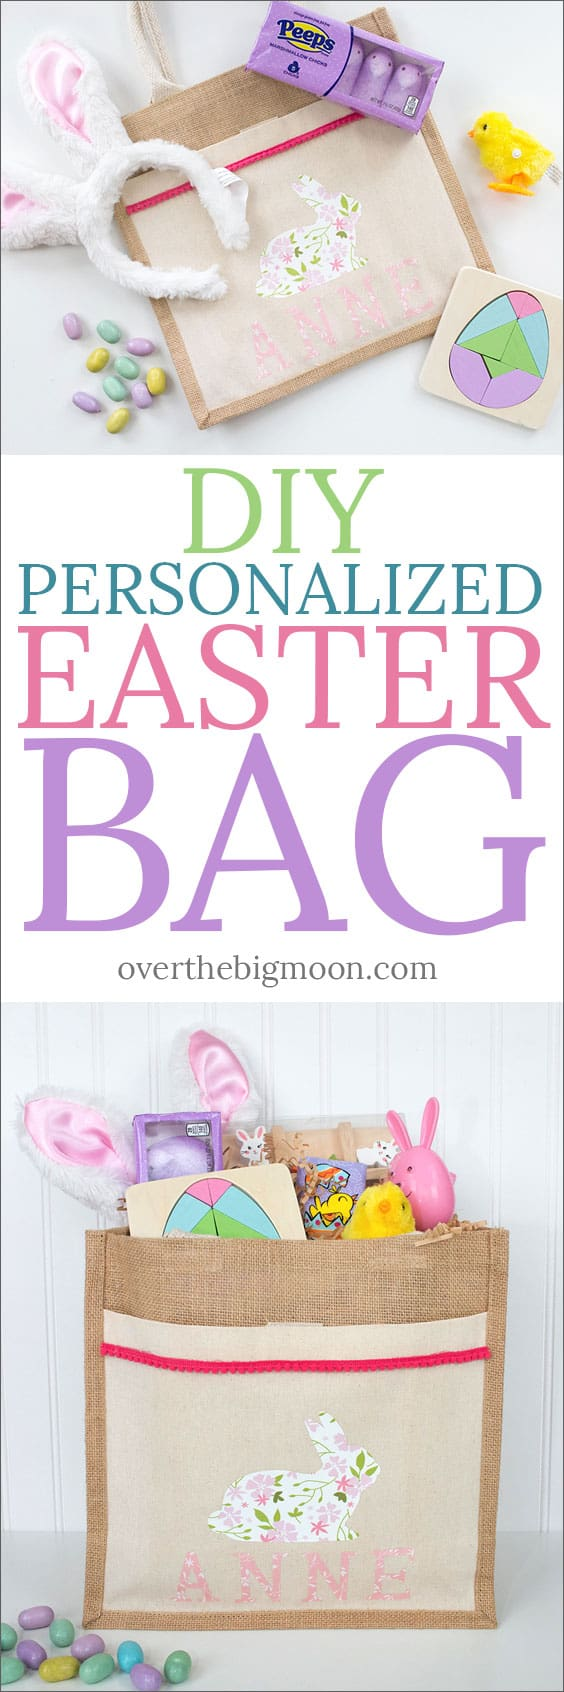 Easter is coming and this DIY Personalized Easter Bag with Iron On Vinyl is the perfect Easter project for you! The project takes less than 30 minutes and Cricut's Patterned Iron On is a great way to take your project to the next level and add some personality!